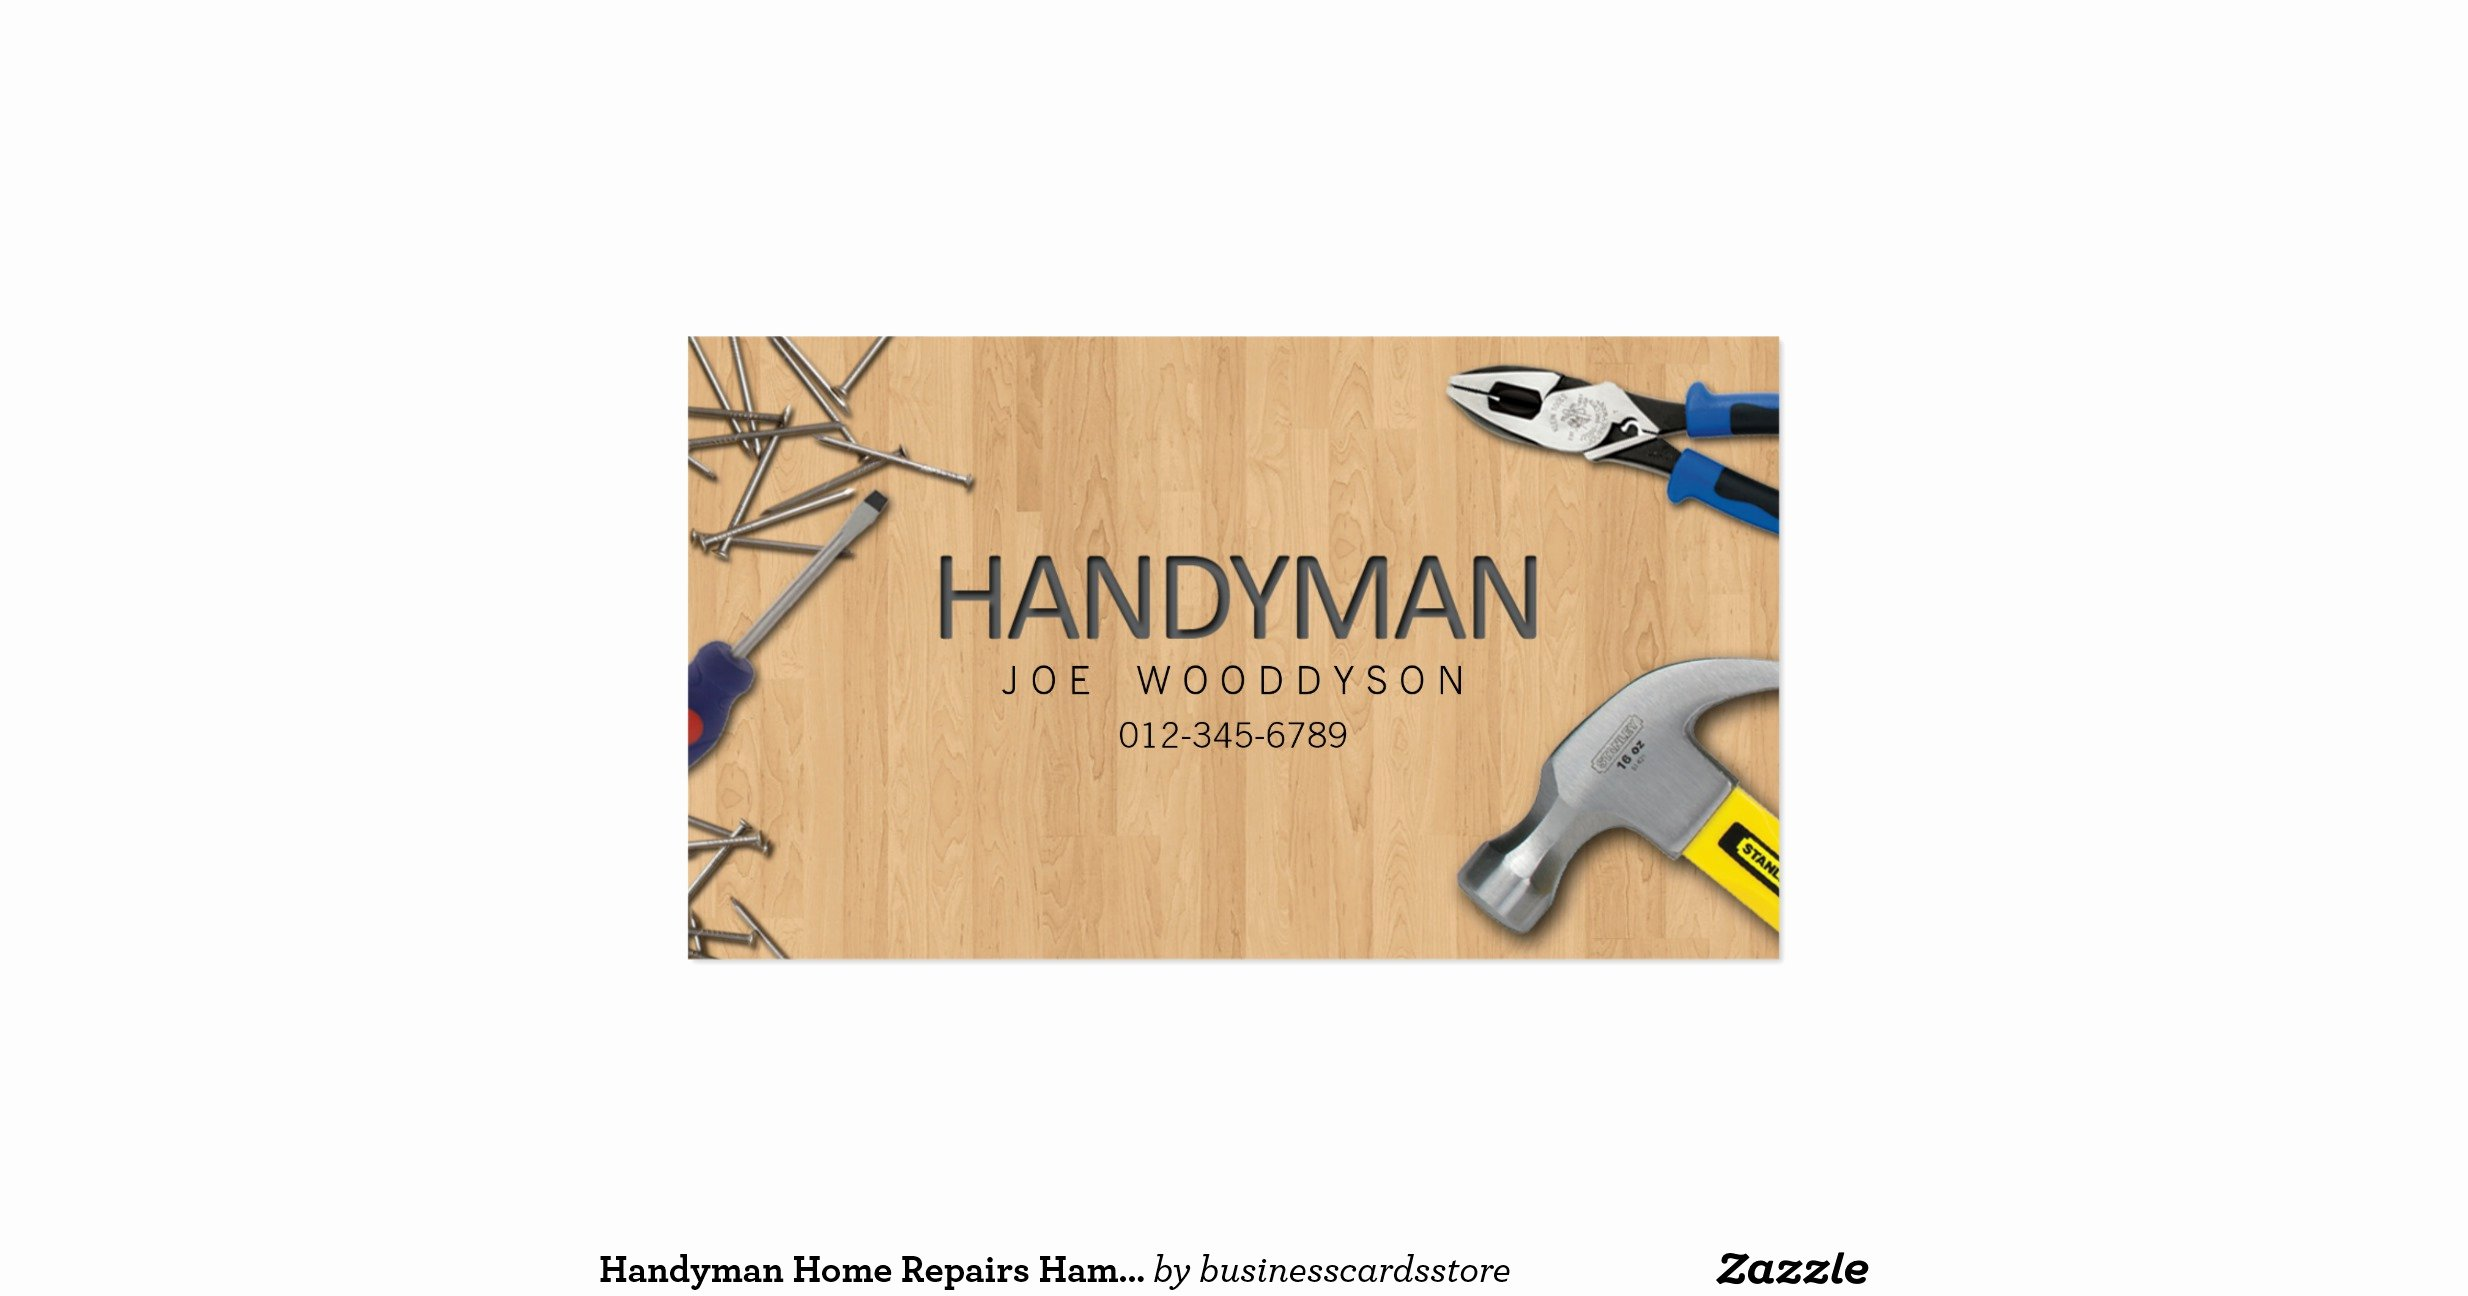 Handy Man Business Cards Inspirational Handyman Business Card Home Repairs